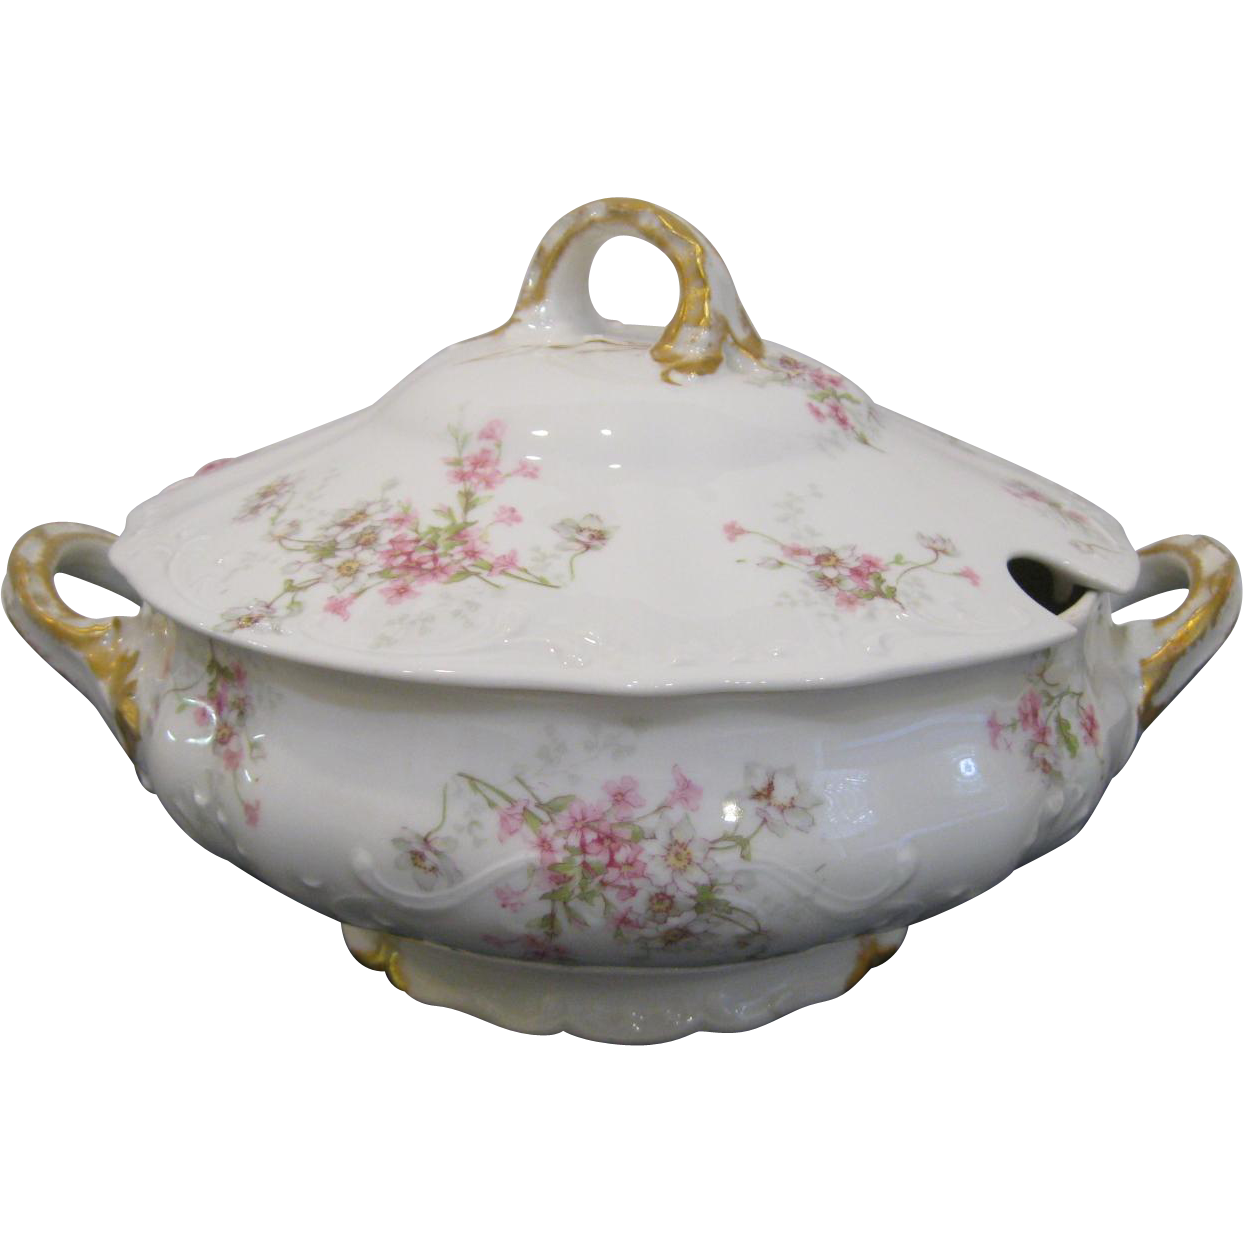 T Haviland Limoges Tureen with Lid,  Scattered Pink and White Flowers, Green Leaves, Gold Trim